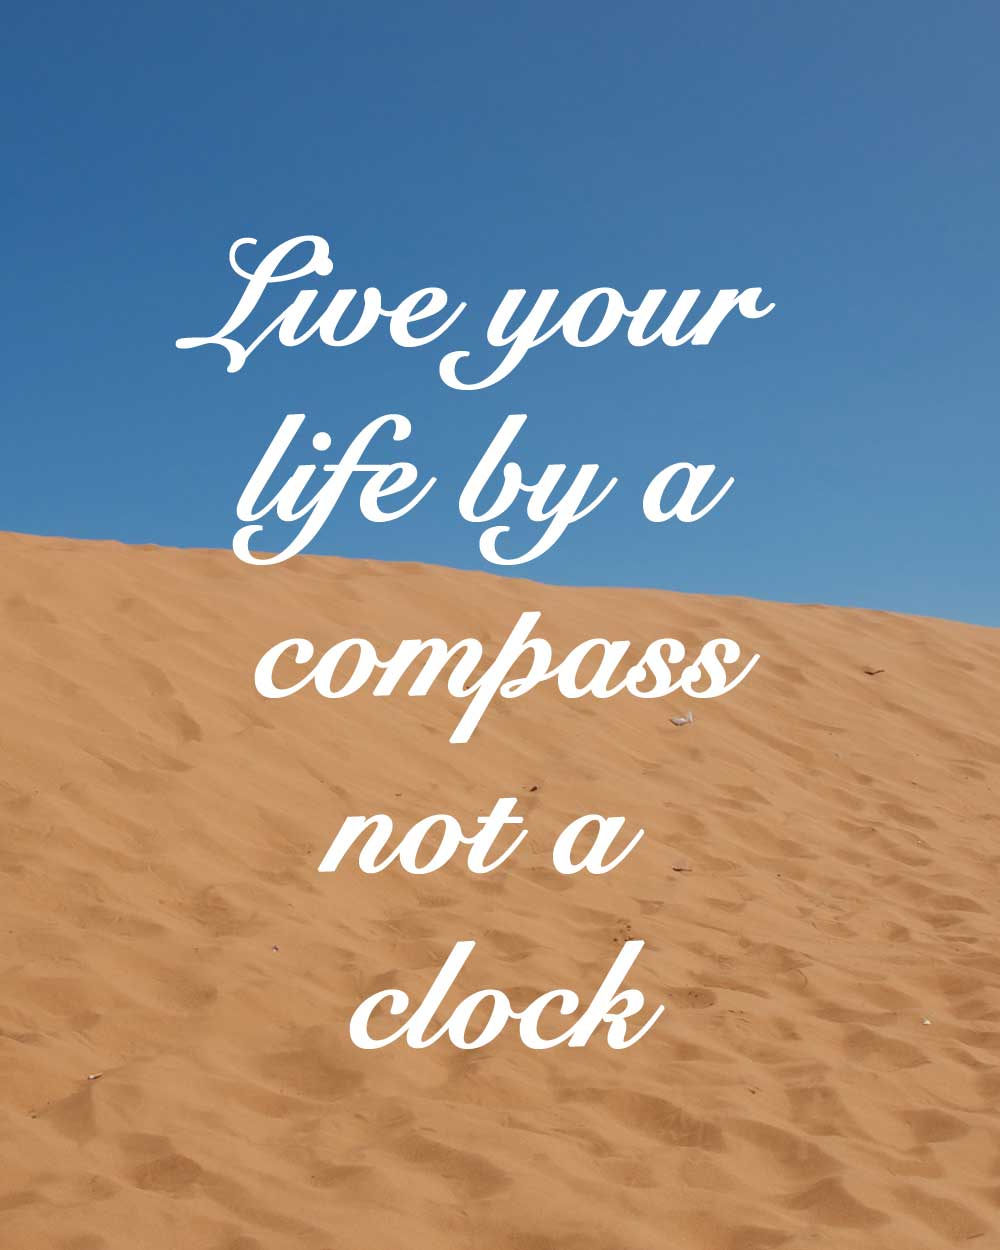 Quotes To Live Your Life By Liveyourlifebyacompassnotaclock  Around The World